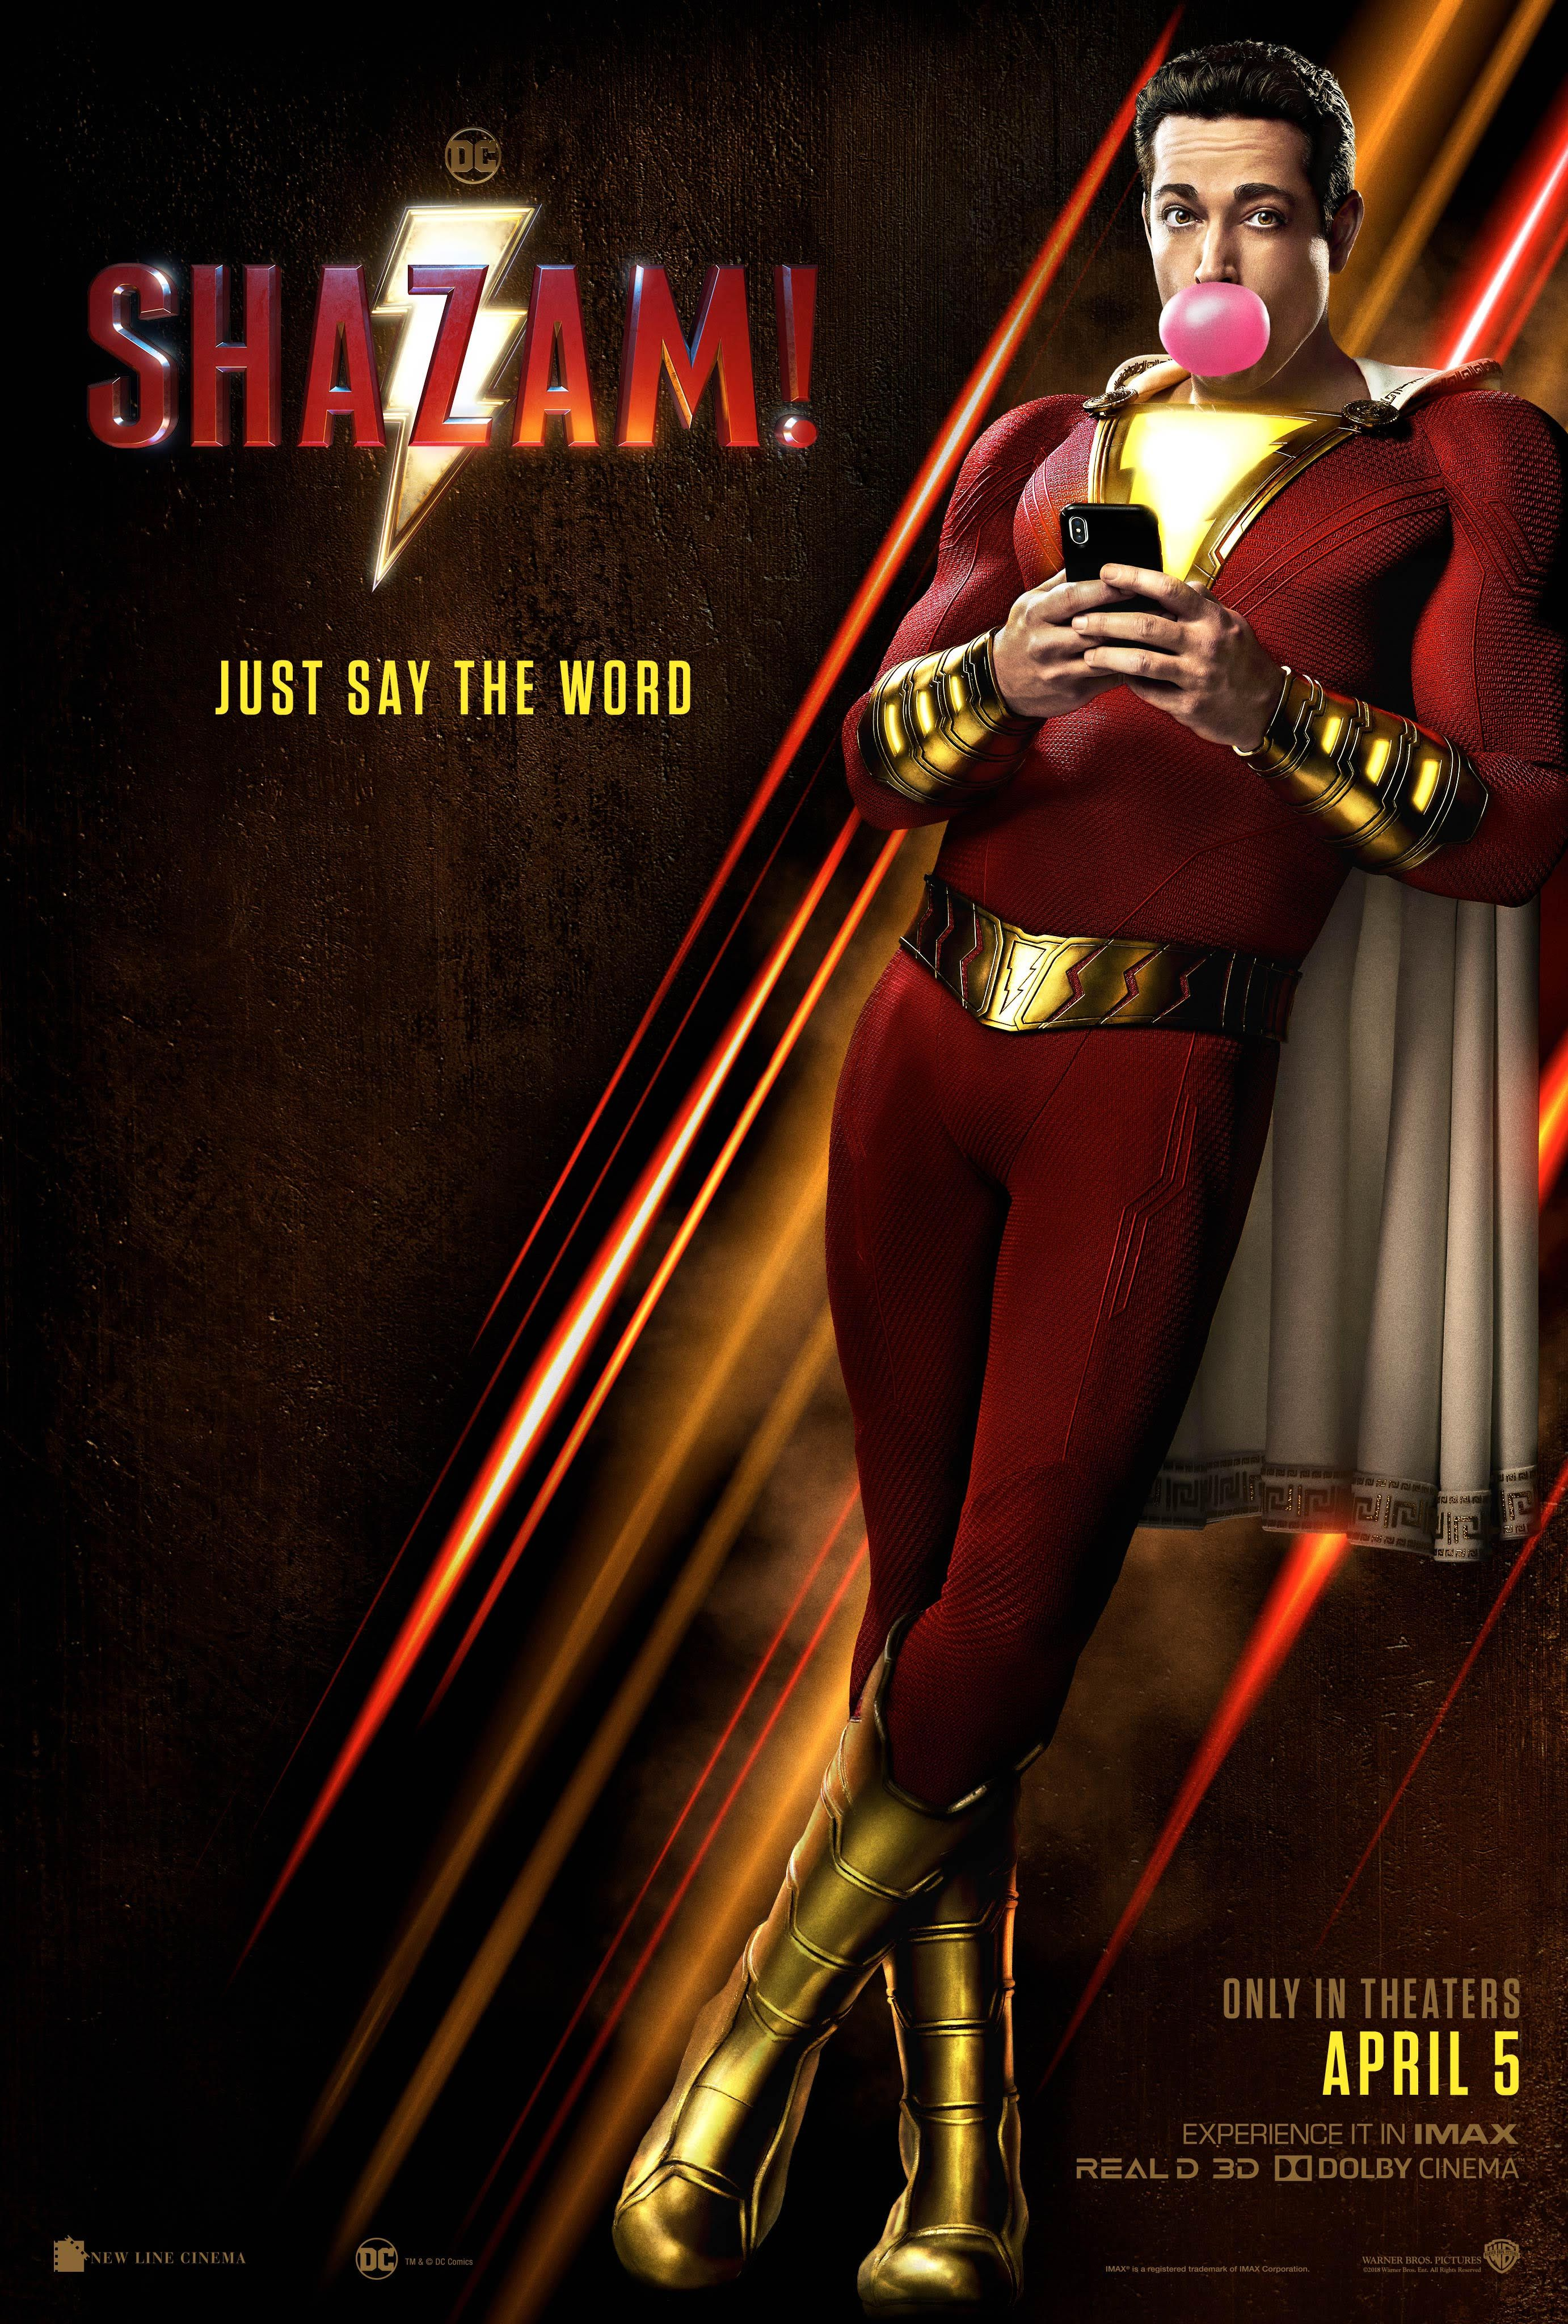 New Shazam Poster Reminds You the Movie Is Fun | Collider